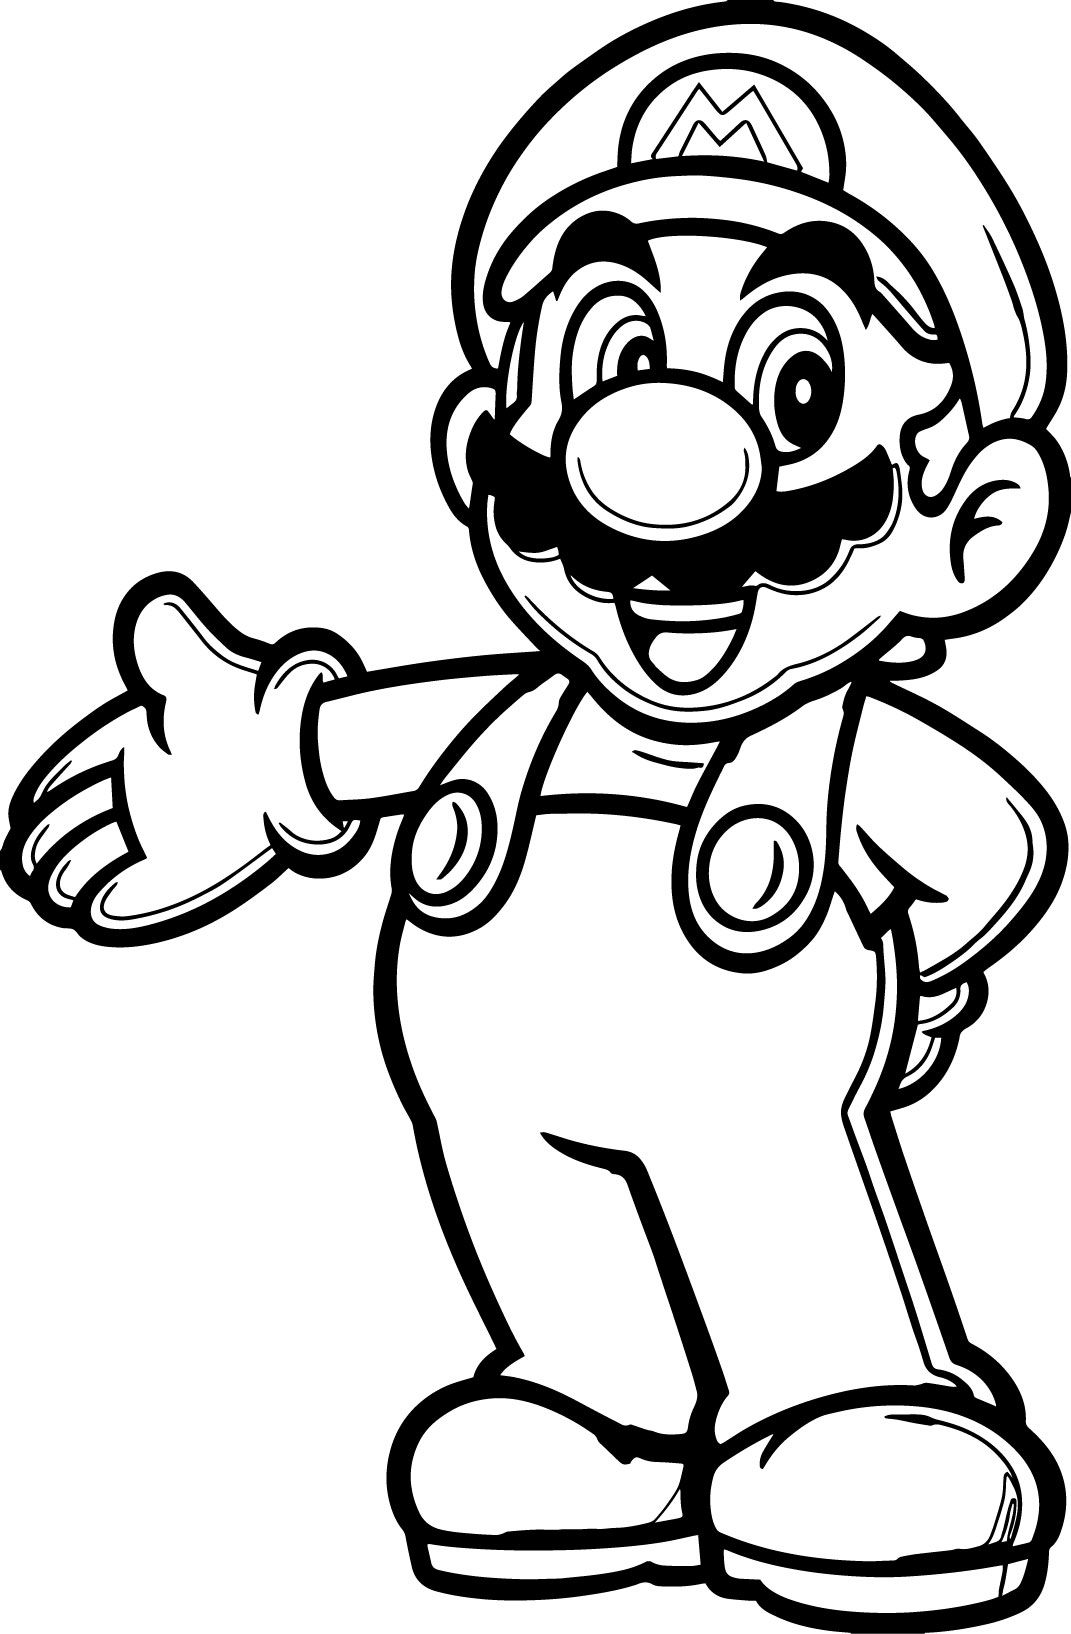 20 Populer Cartoon Coloring Pages